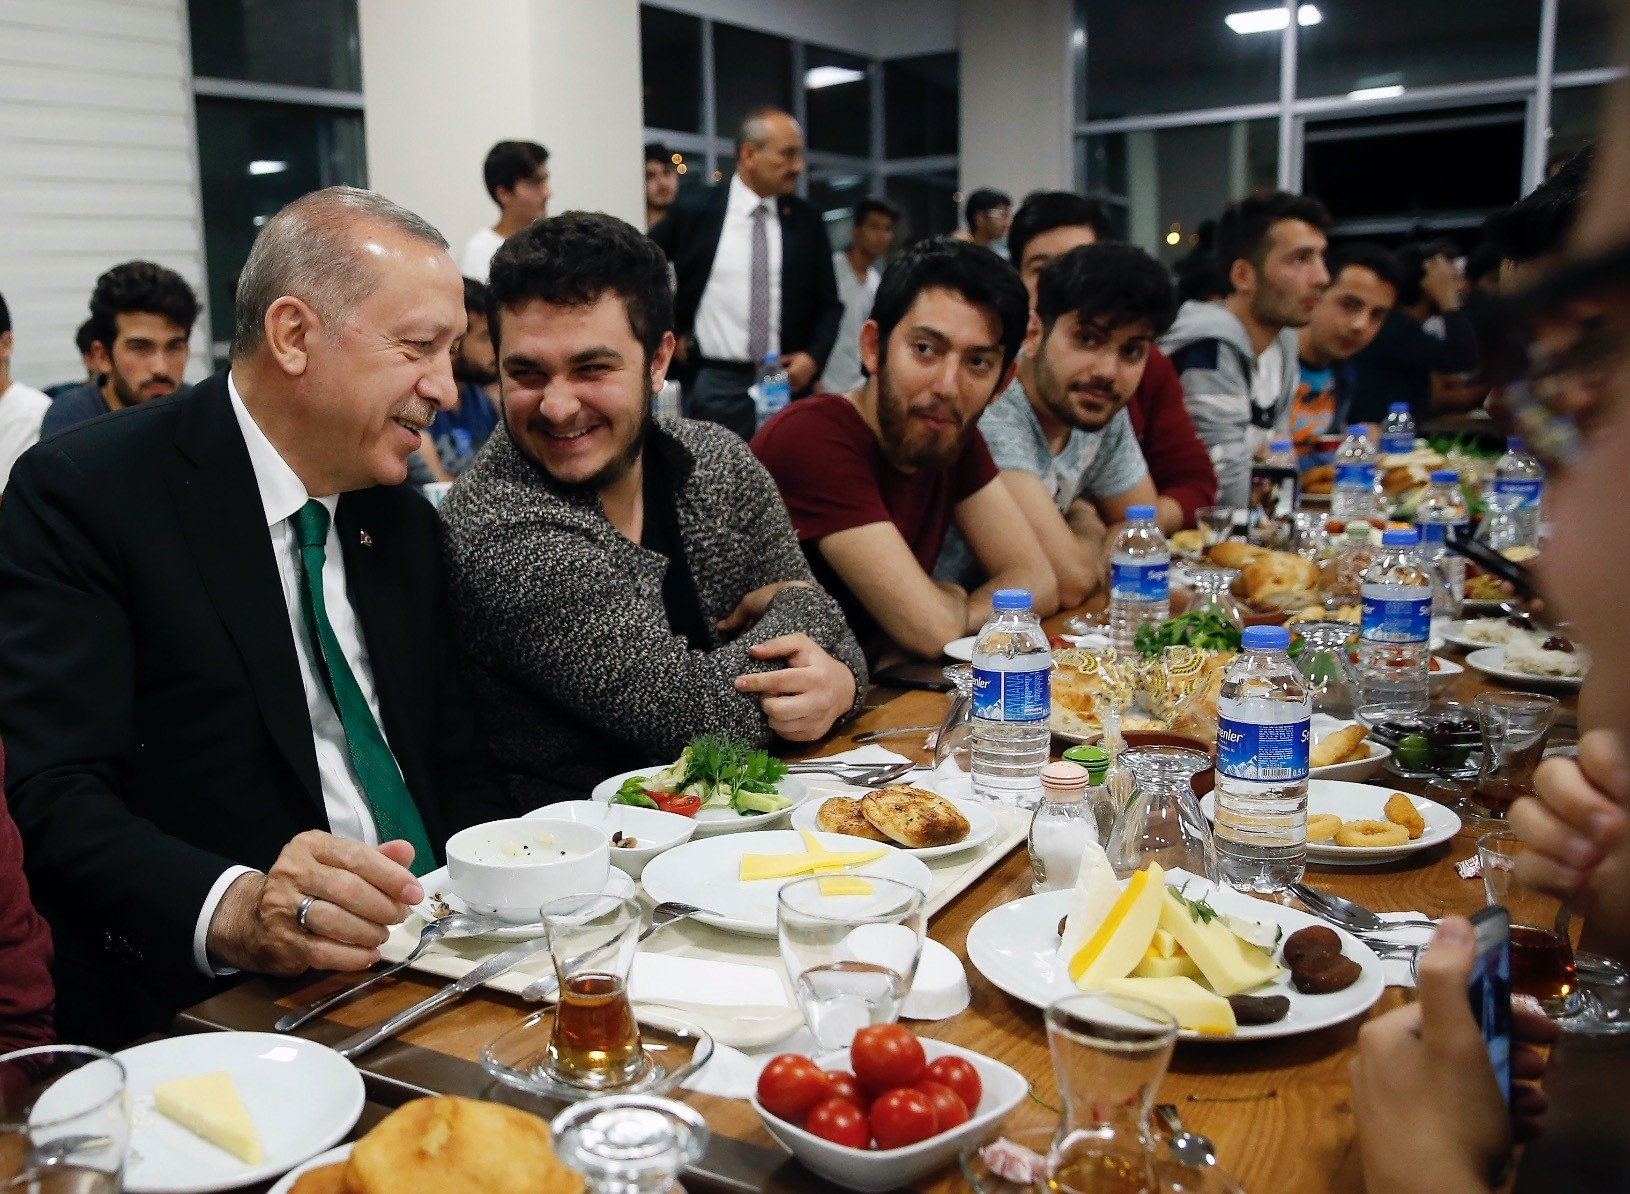 President Erdou011fan joined youth for sahur at a student dormitory in Turkeyu2019s capital Ankara, after receiving an invitation through Twitter on June 1.